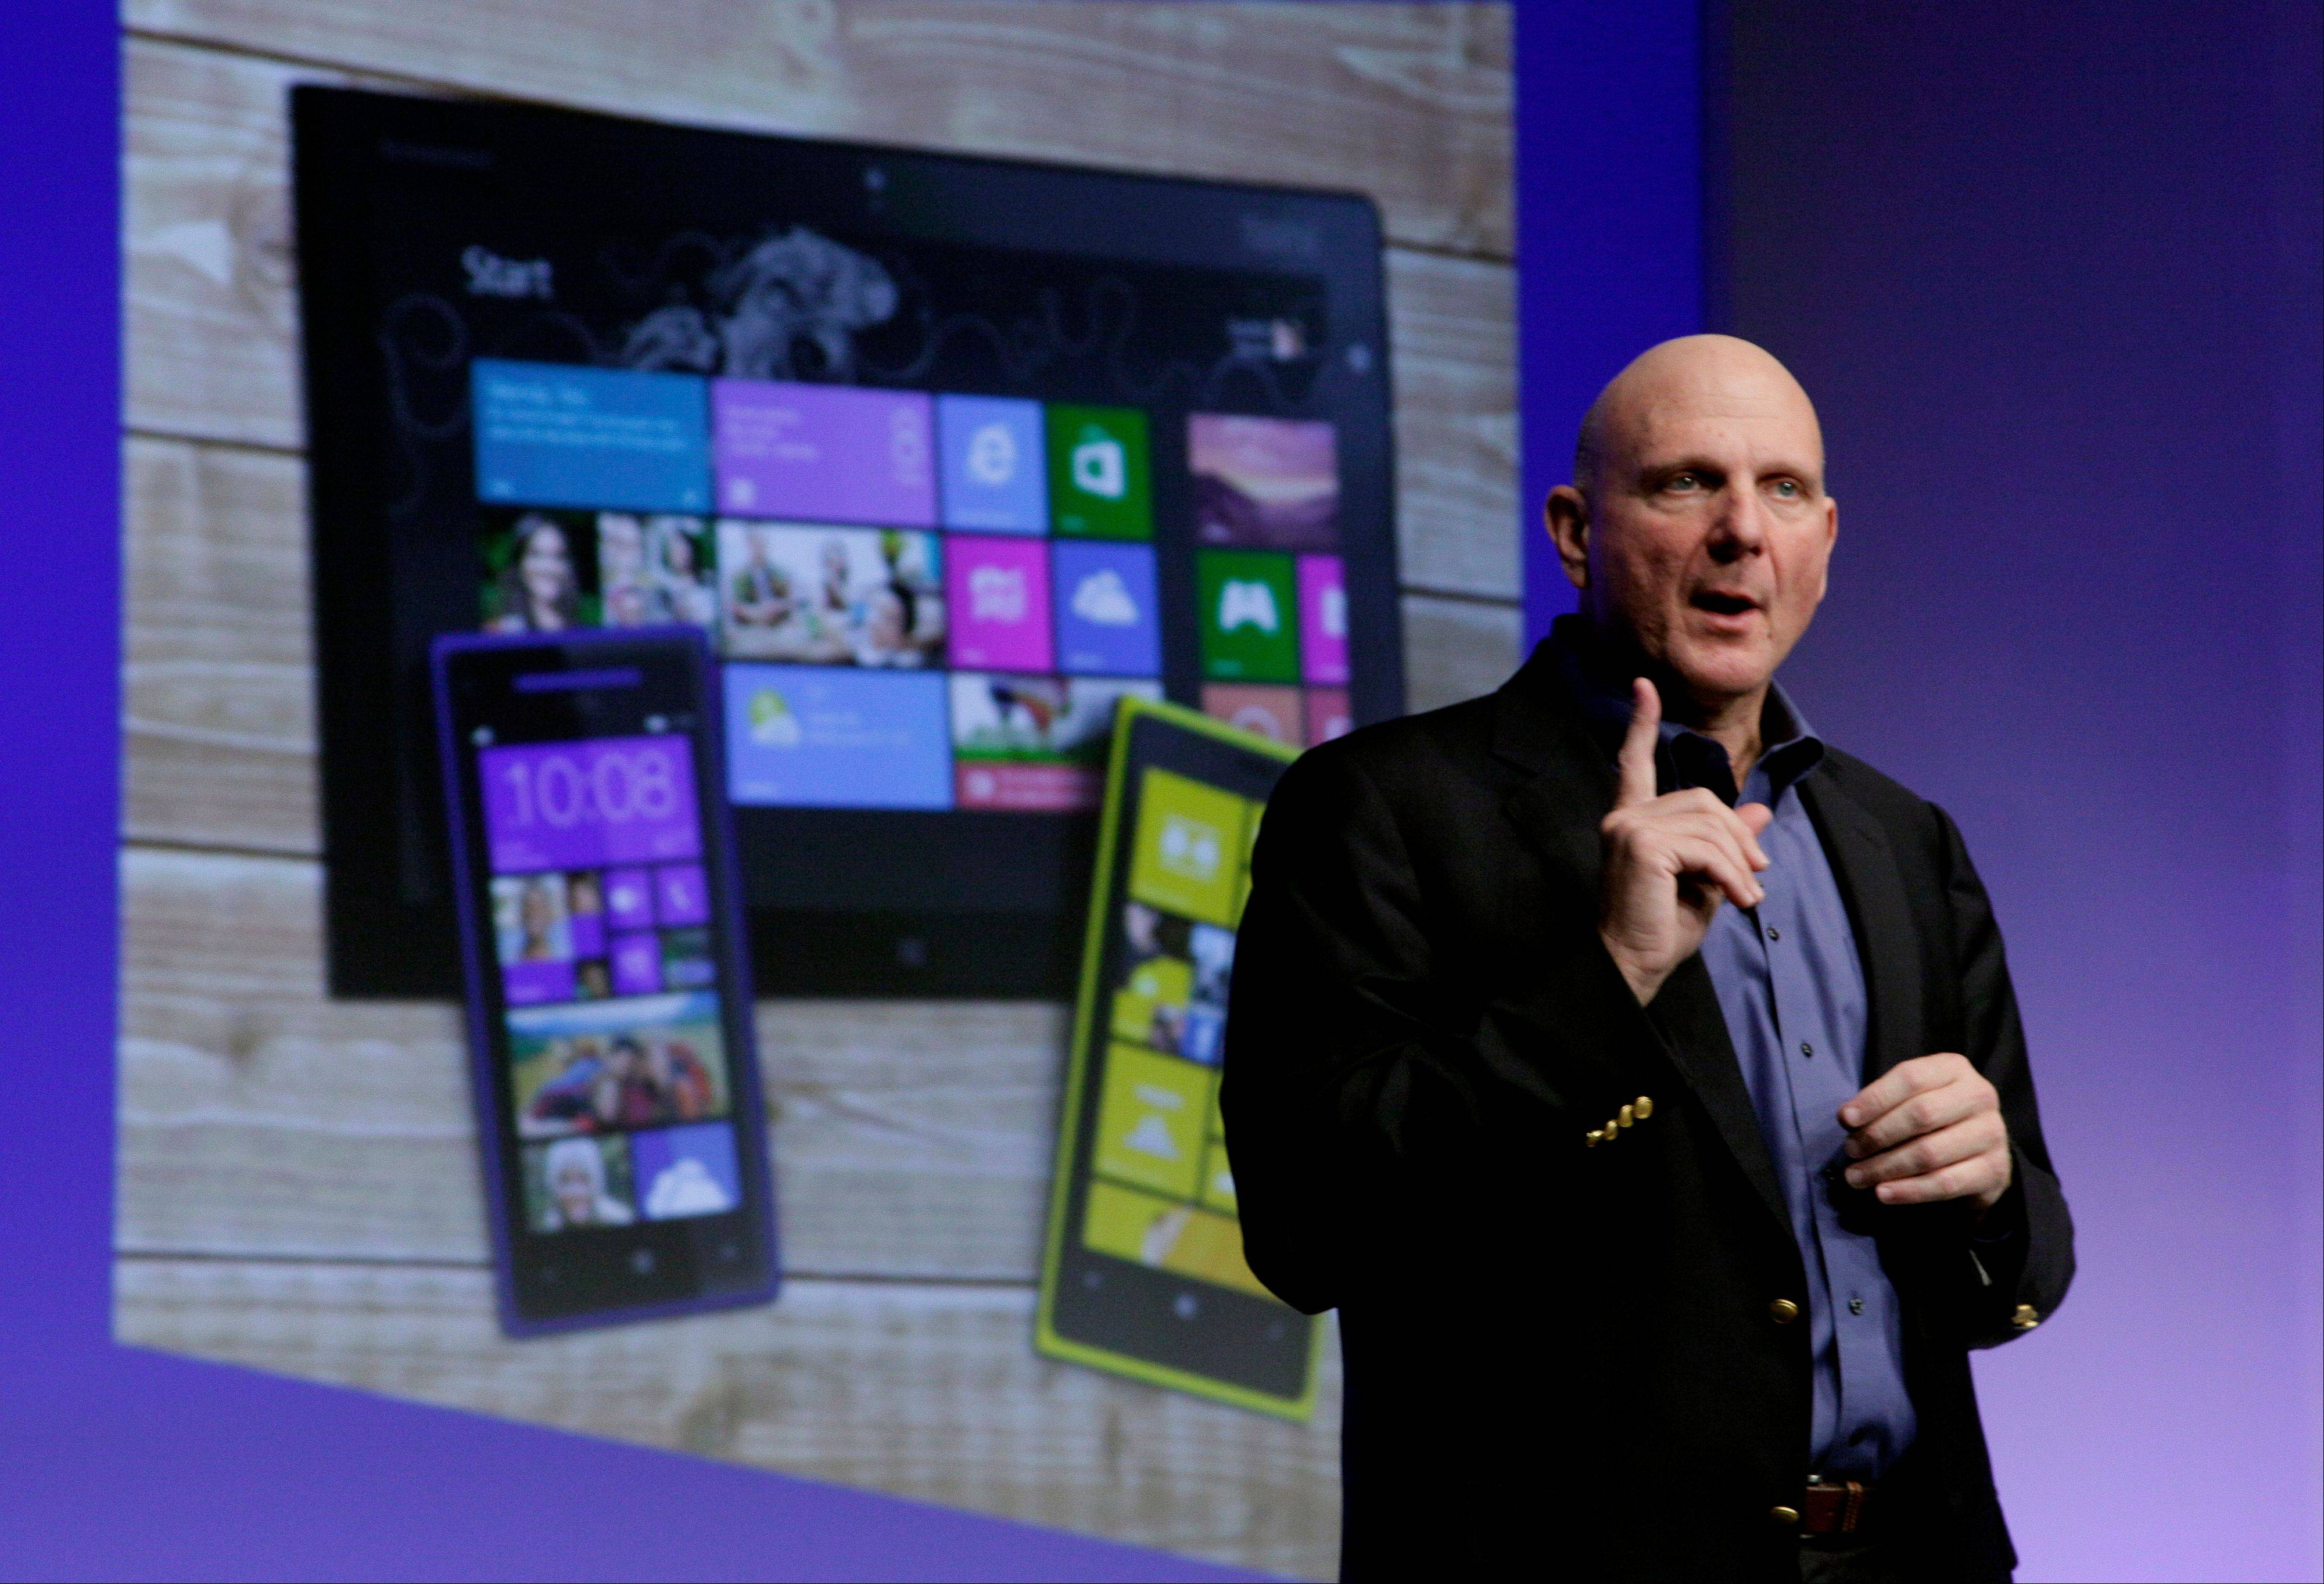 Microsoft CEO Steve Ballmer gives his presentation at the launch of Microsoft Windows 8 in New York on Thursday. Windows 8 is the most dramatic overhaul of the personal computer market's dominant operating system in 17 years.